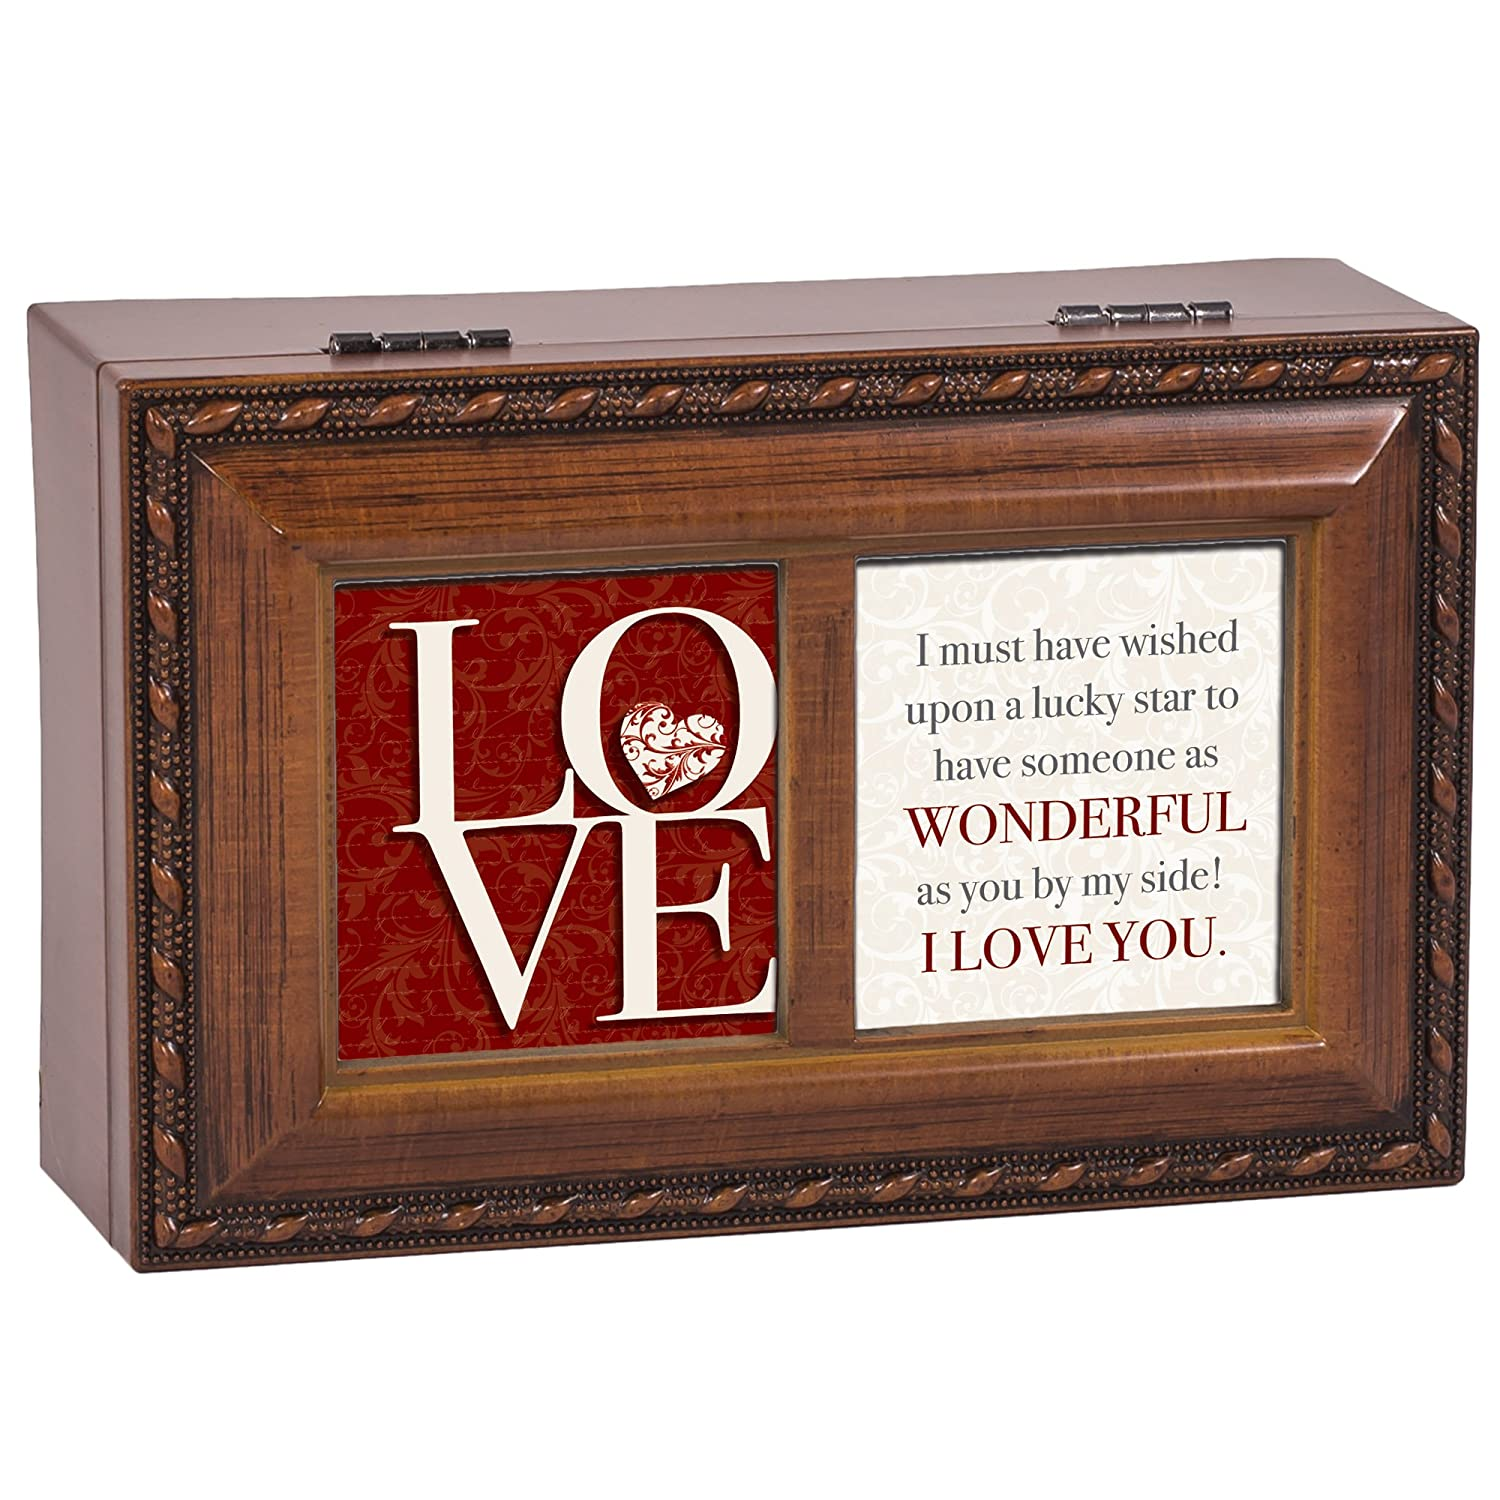 Cottage Garden Love You by My Side Petite Rope Trim Petite Music Box Plays You Light Up My Life